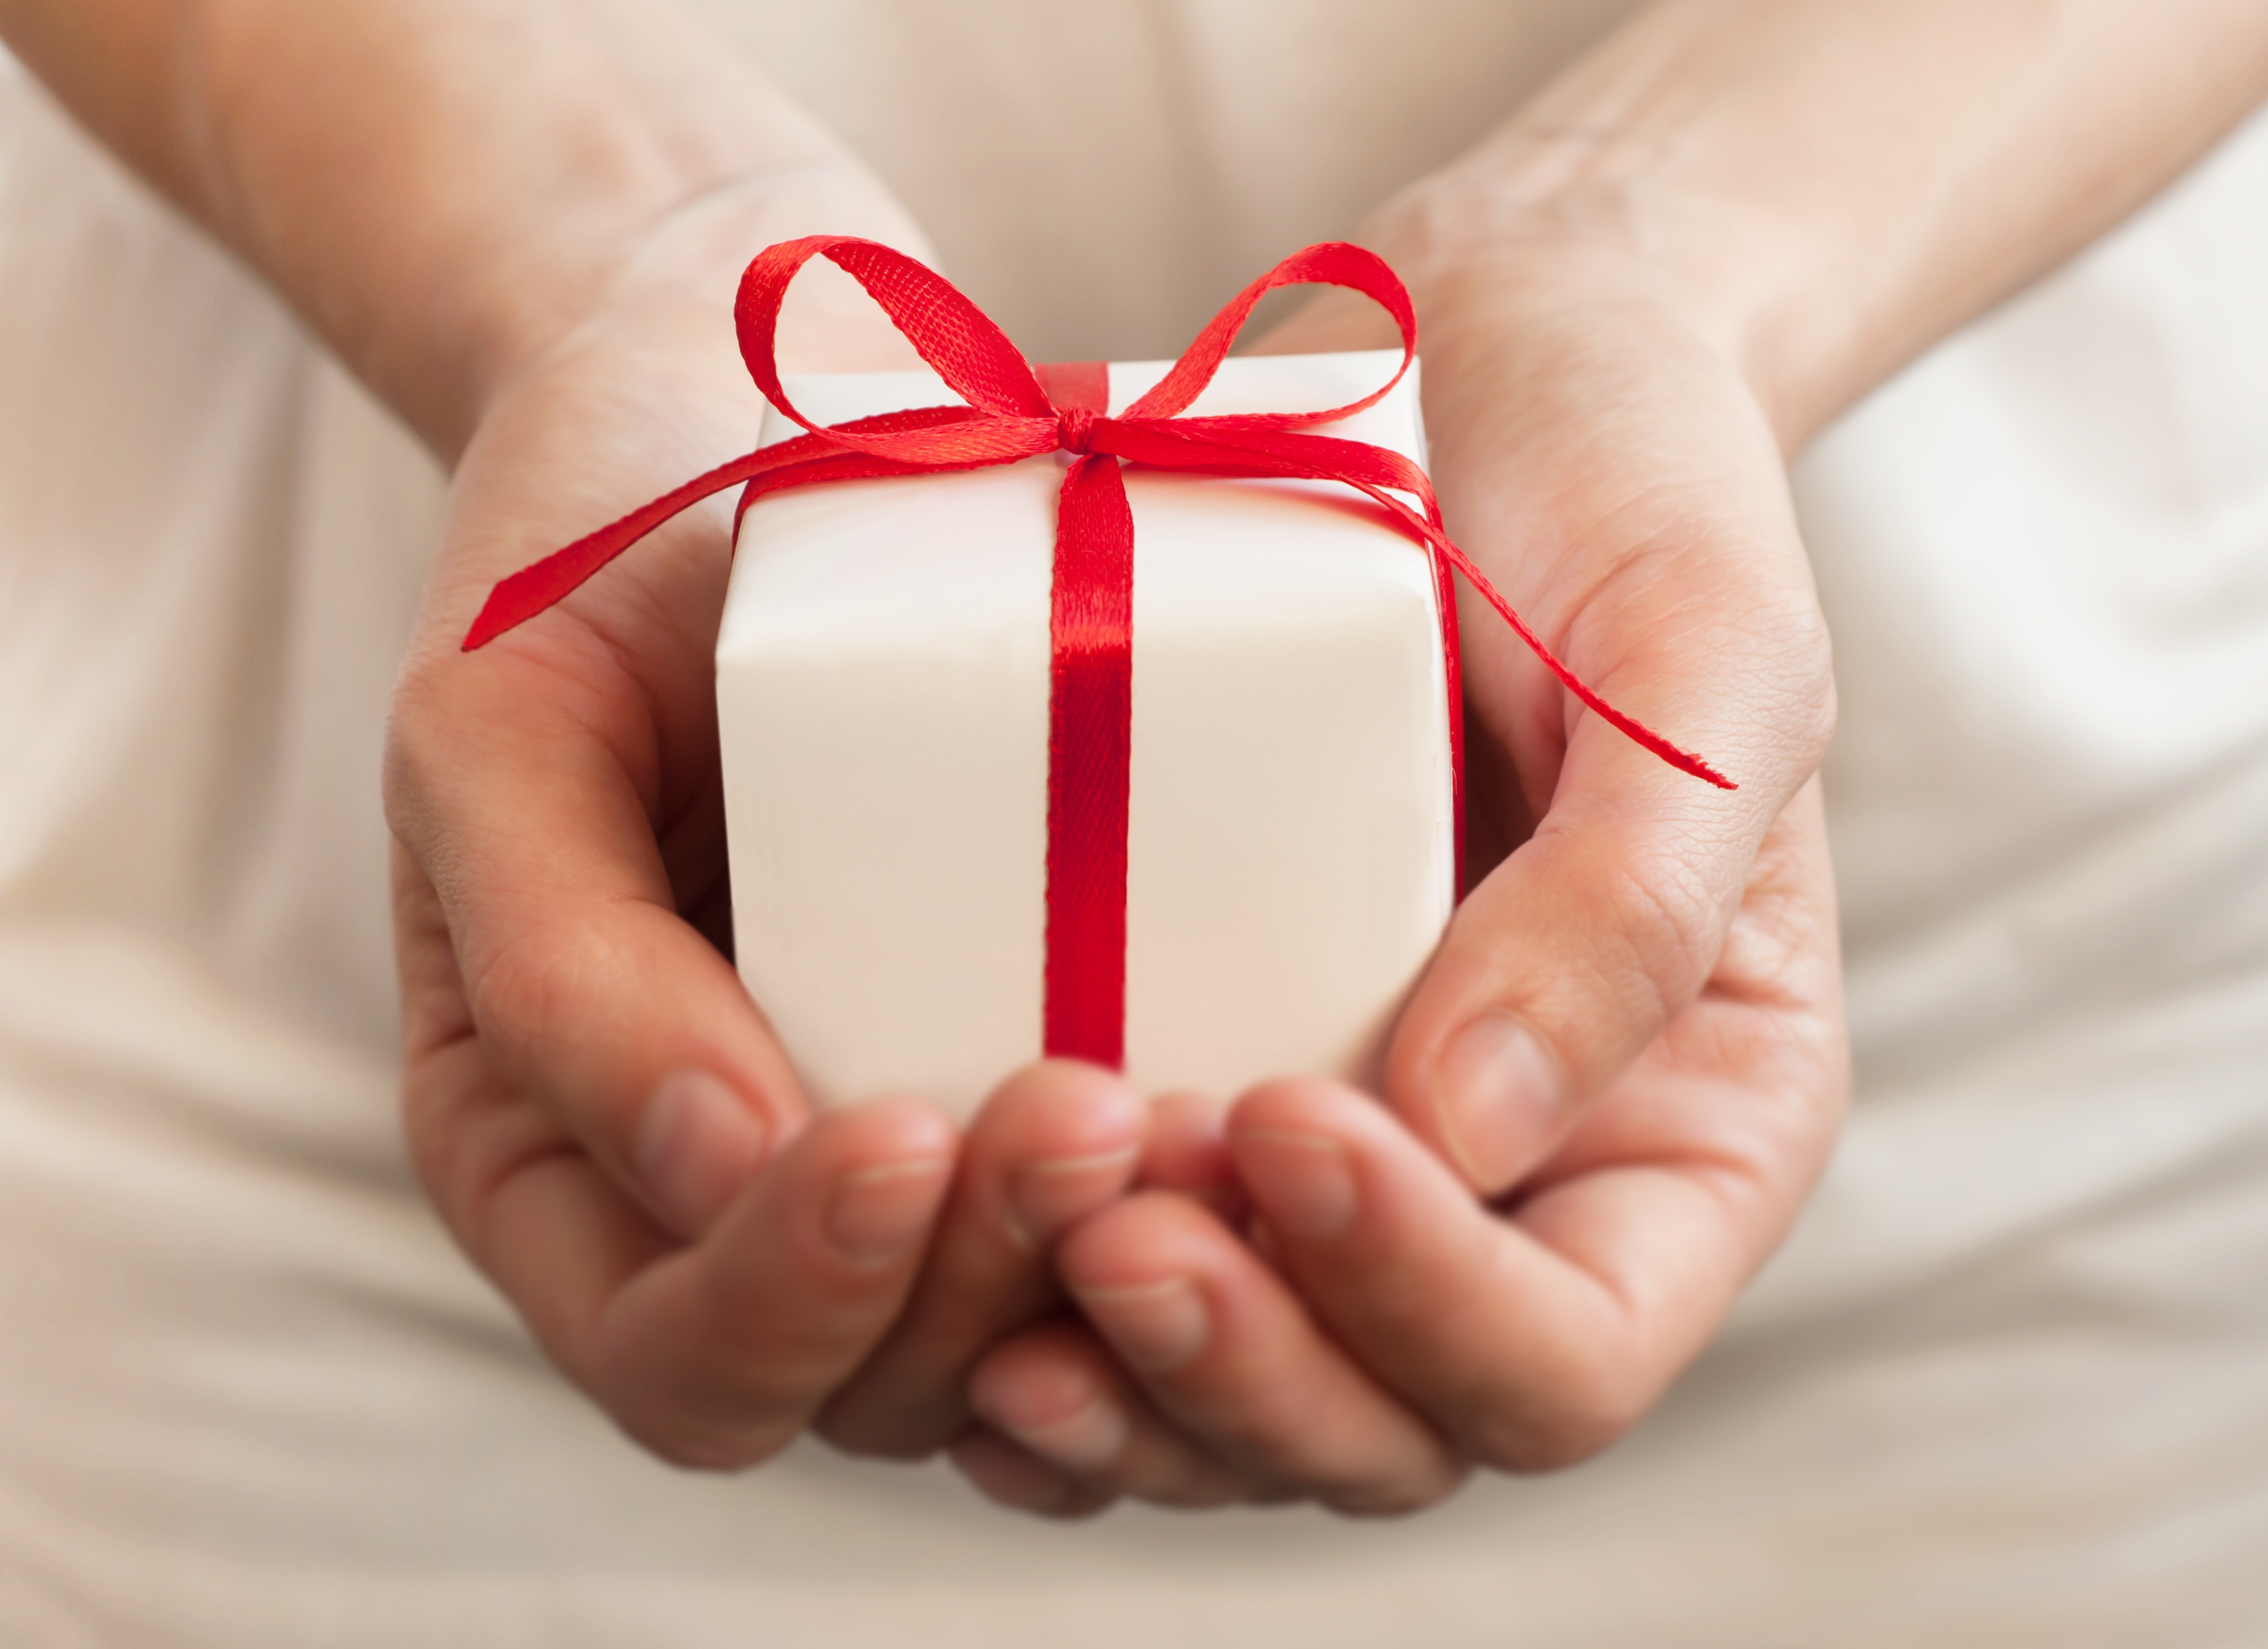 Gift Ideas For Cancer Patients What To Avoid